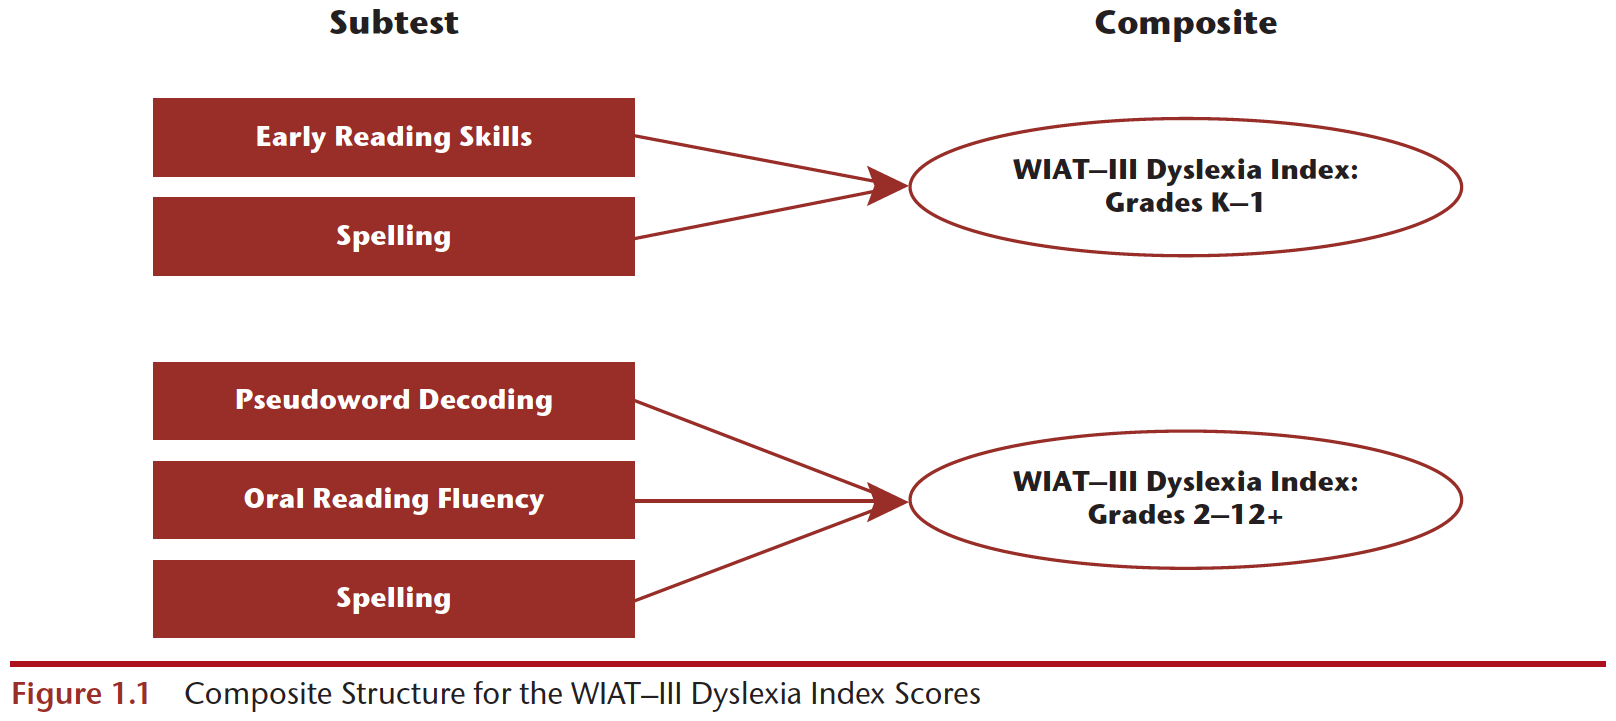 WIAT-III composite structure for Dyslexia Index scores for students in grades 2–12